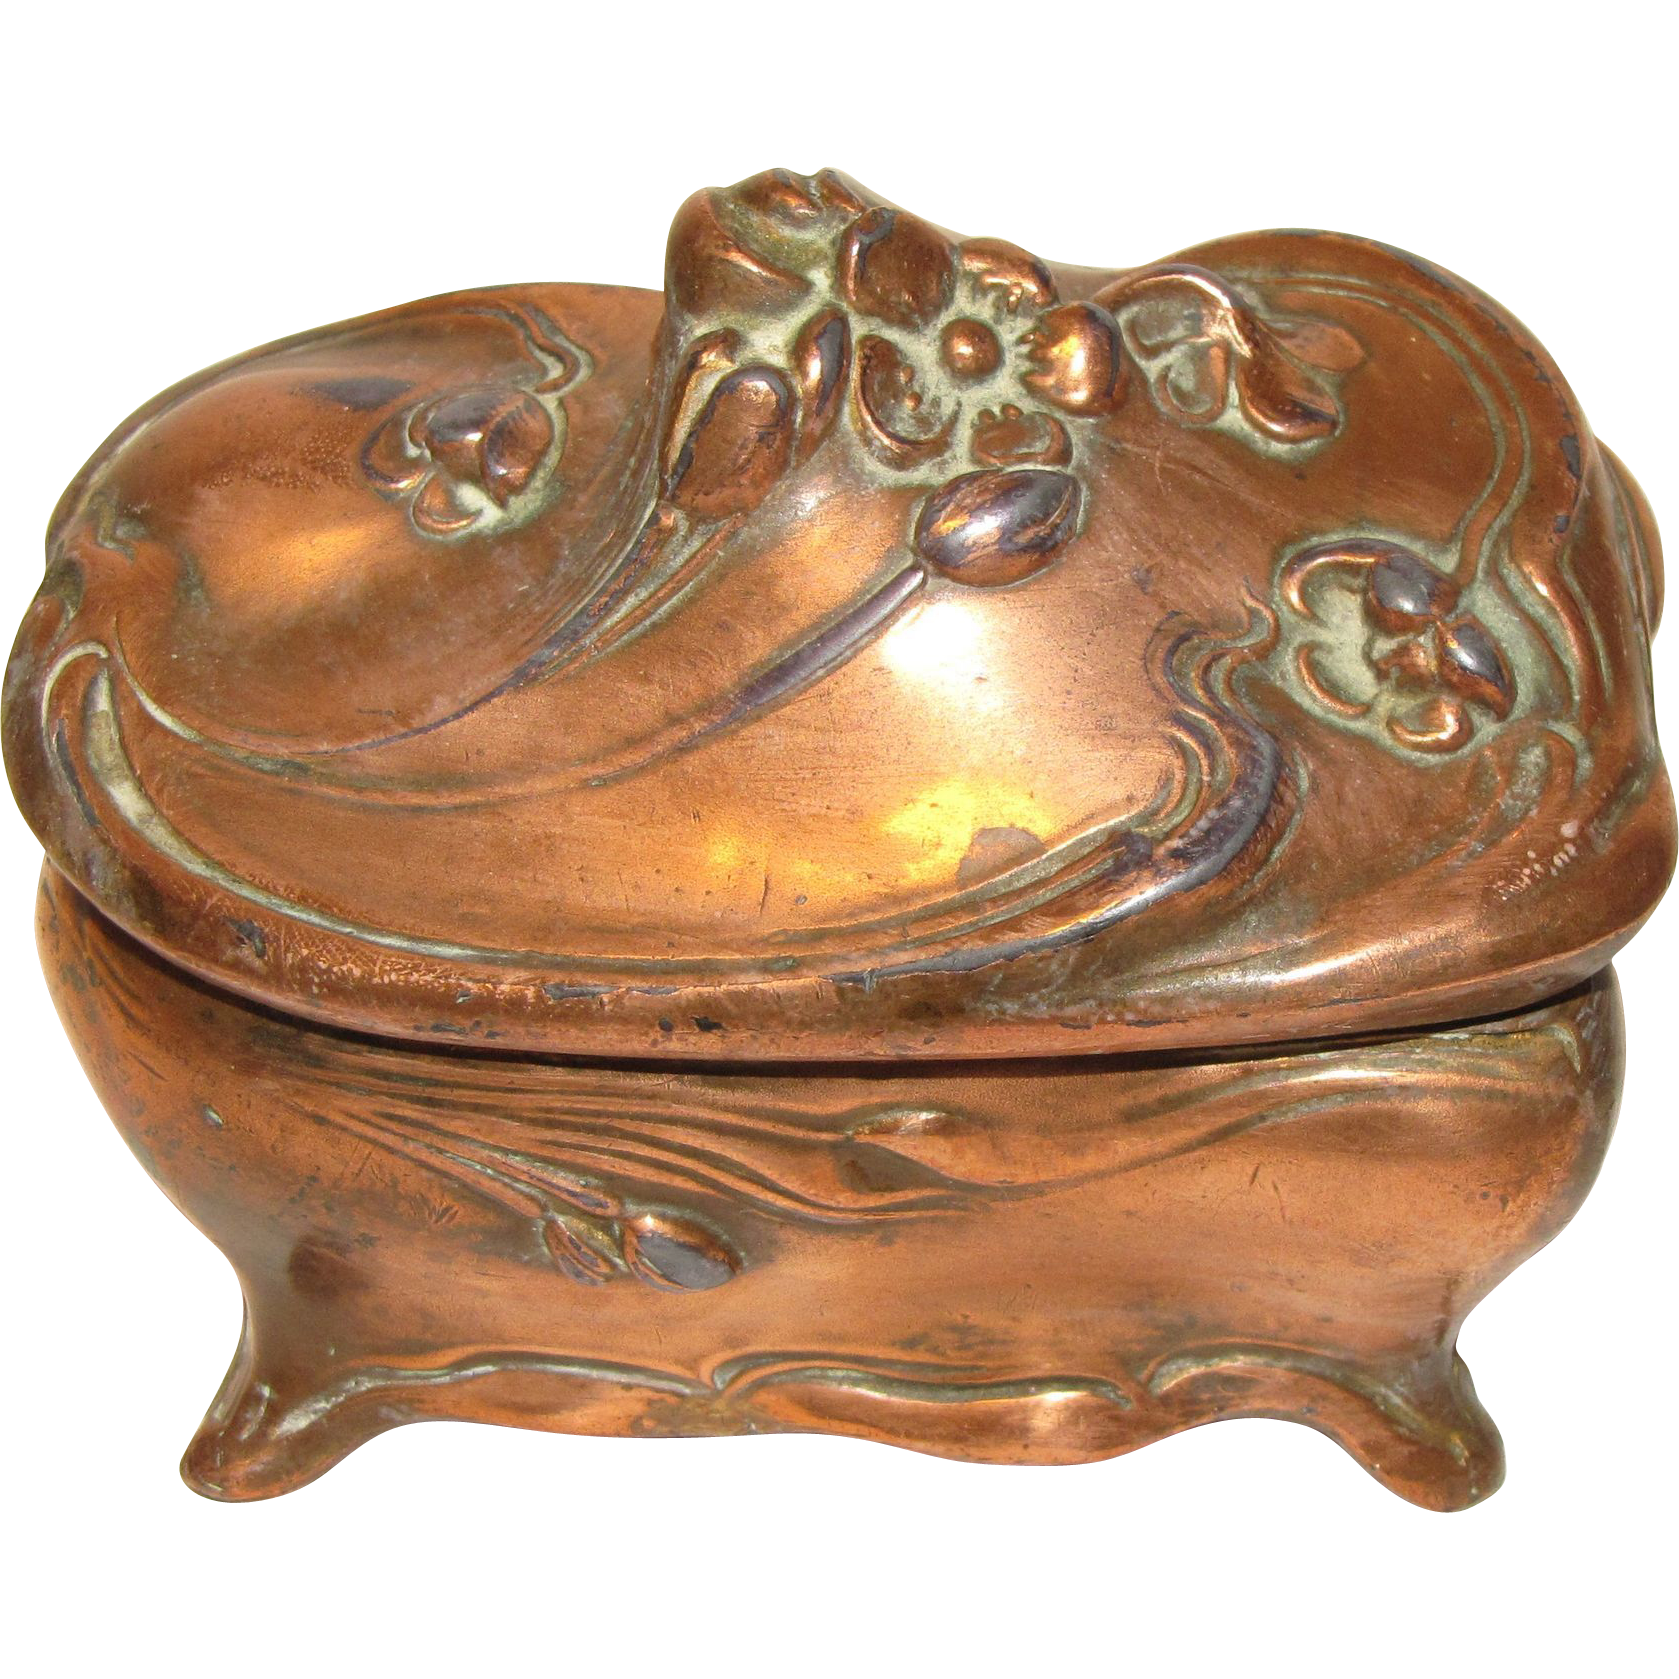 Vintage Art Nouveau Jewelry Box Copper J B Jennings from